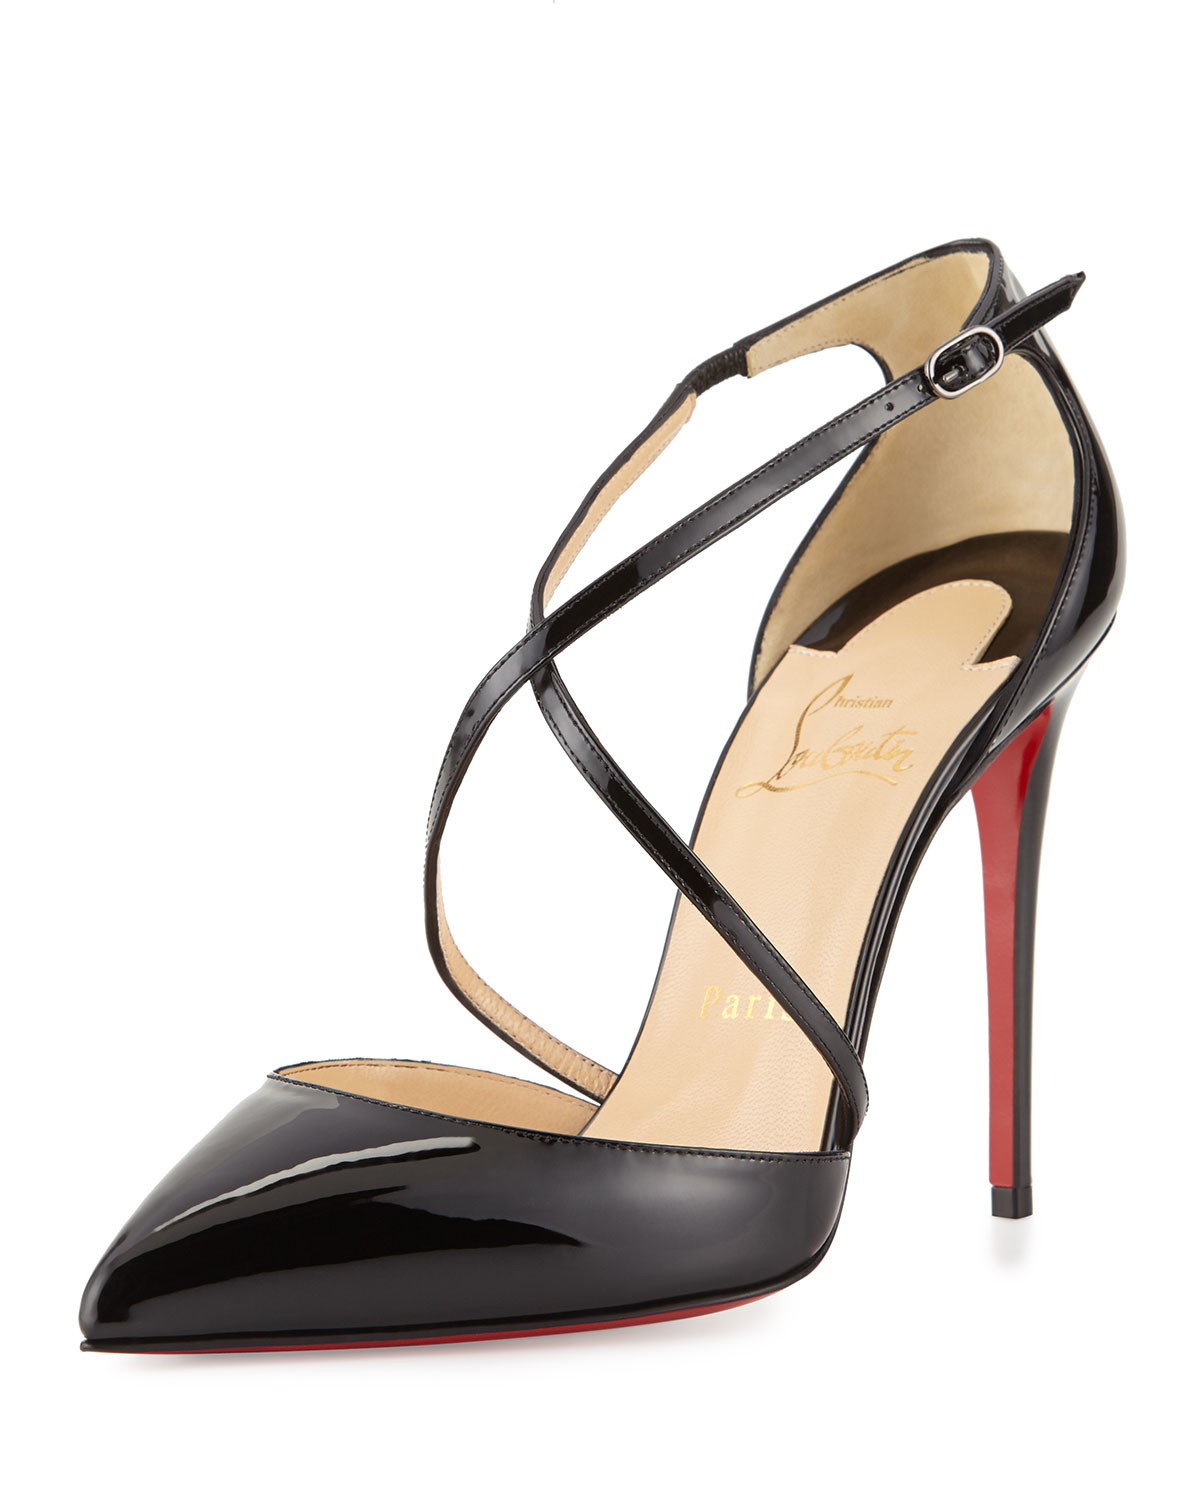 7e142ef5d117 Lyst - Christian Louboutin Cross Blake 100mm Patent Red Sole Pump in ...